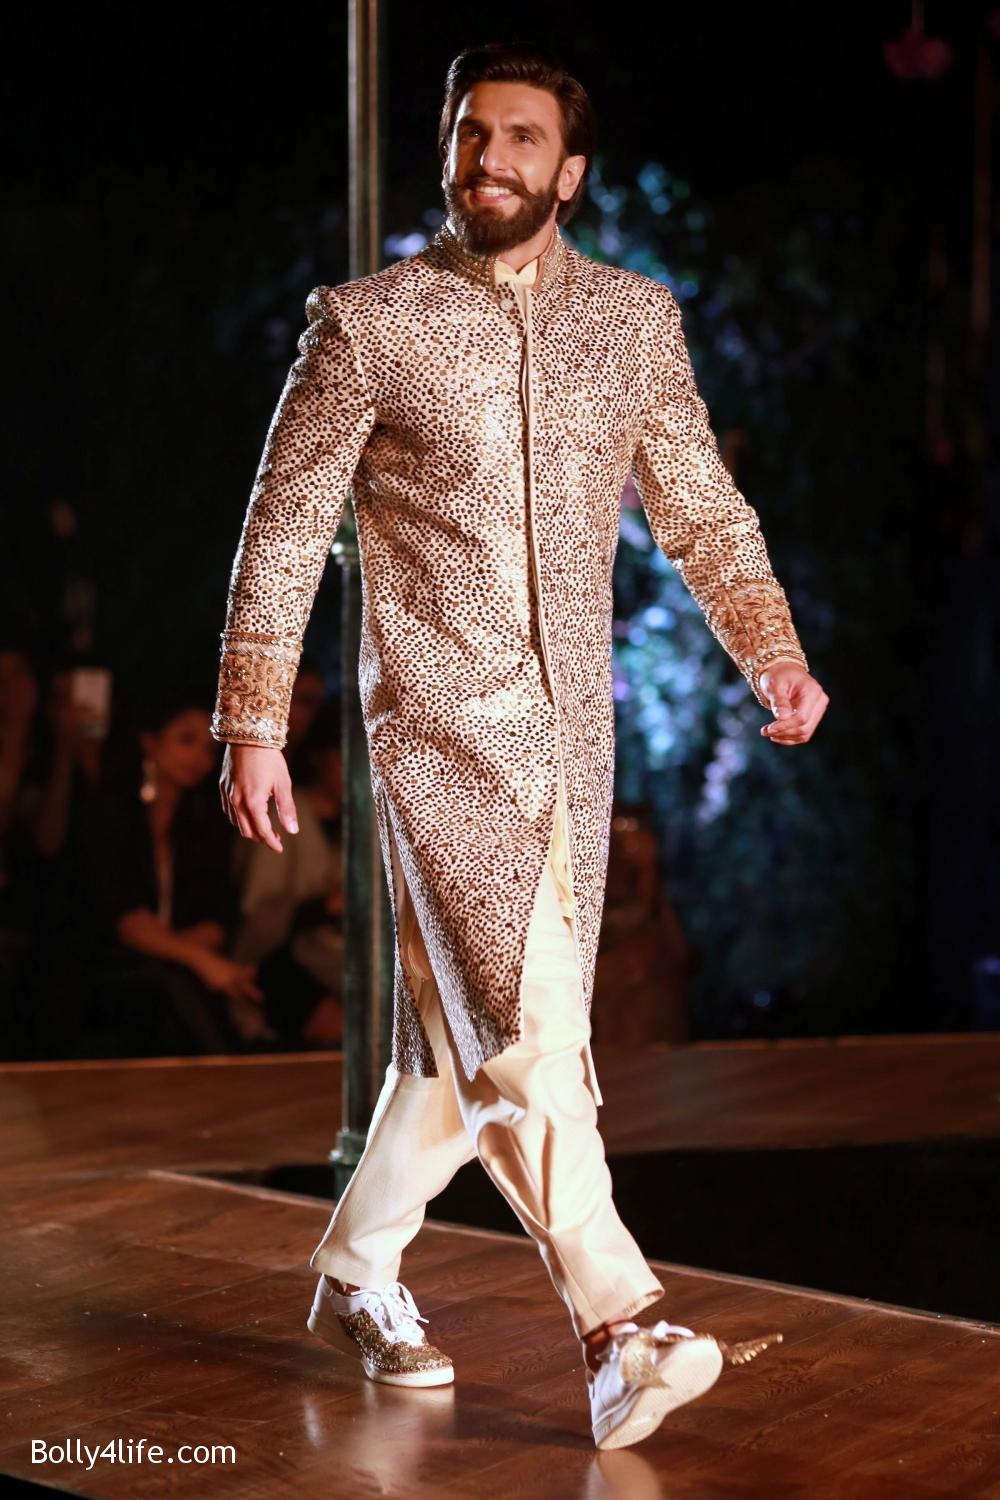 Divani-Fashion-Show-Ranveer-Singh-and-Vaani-Kapoor-8.jpg